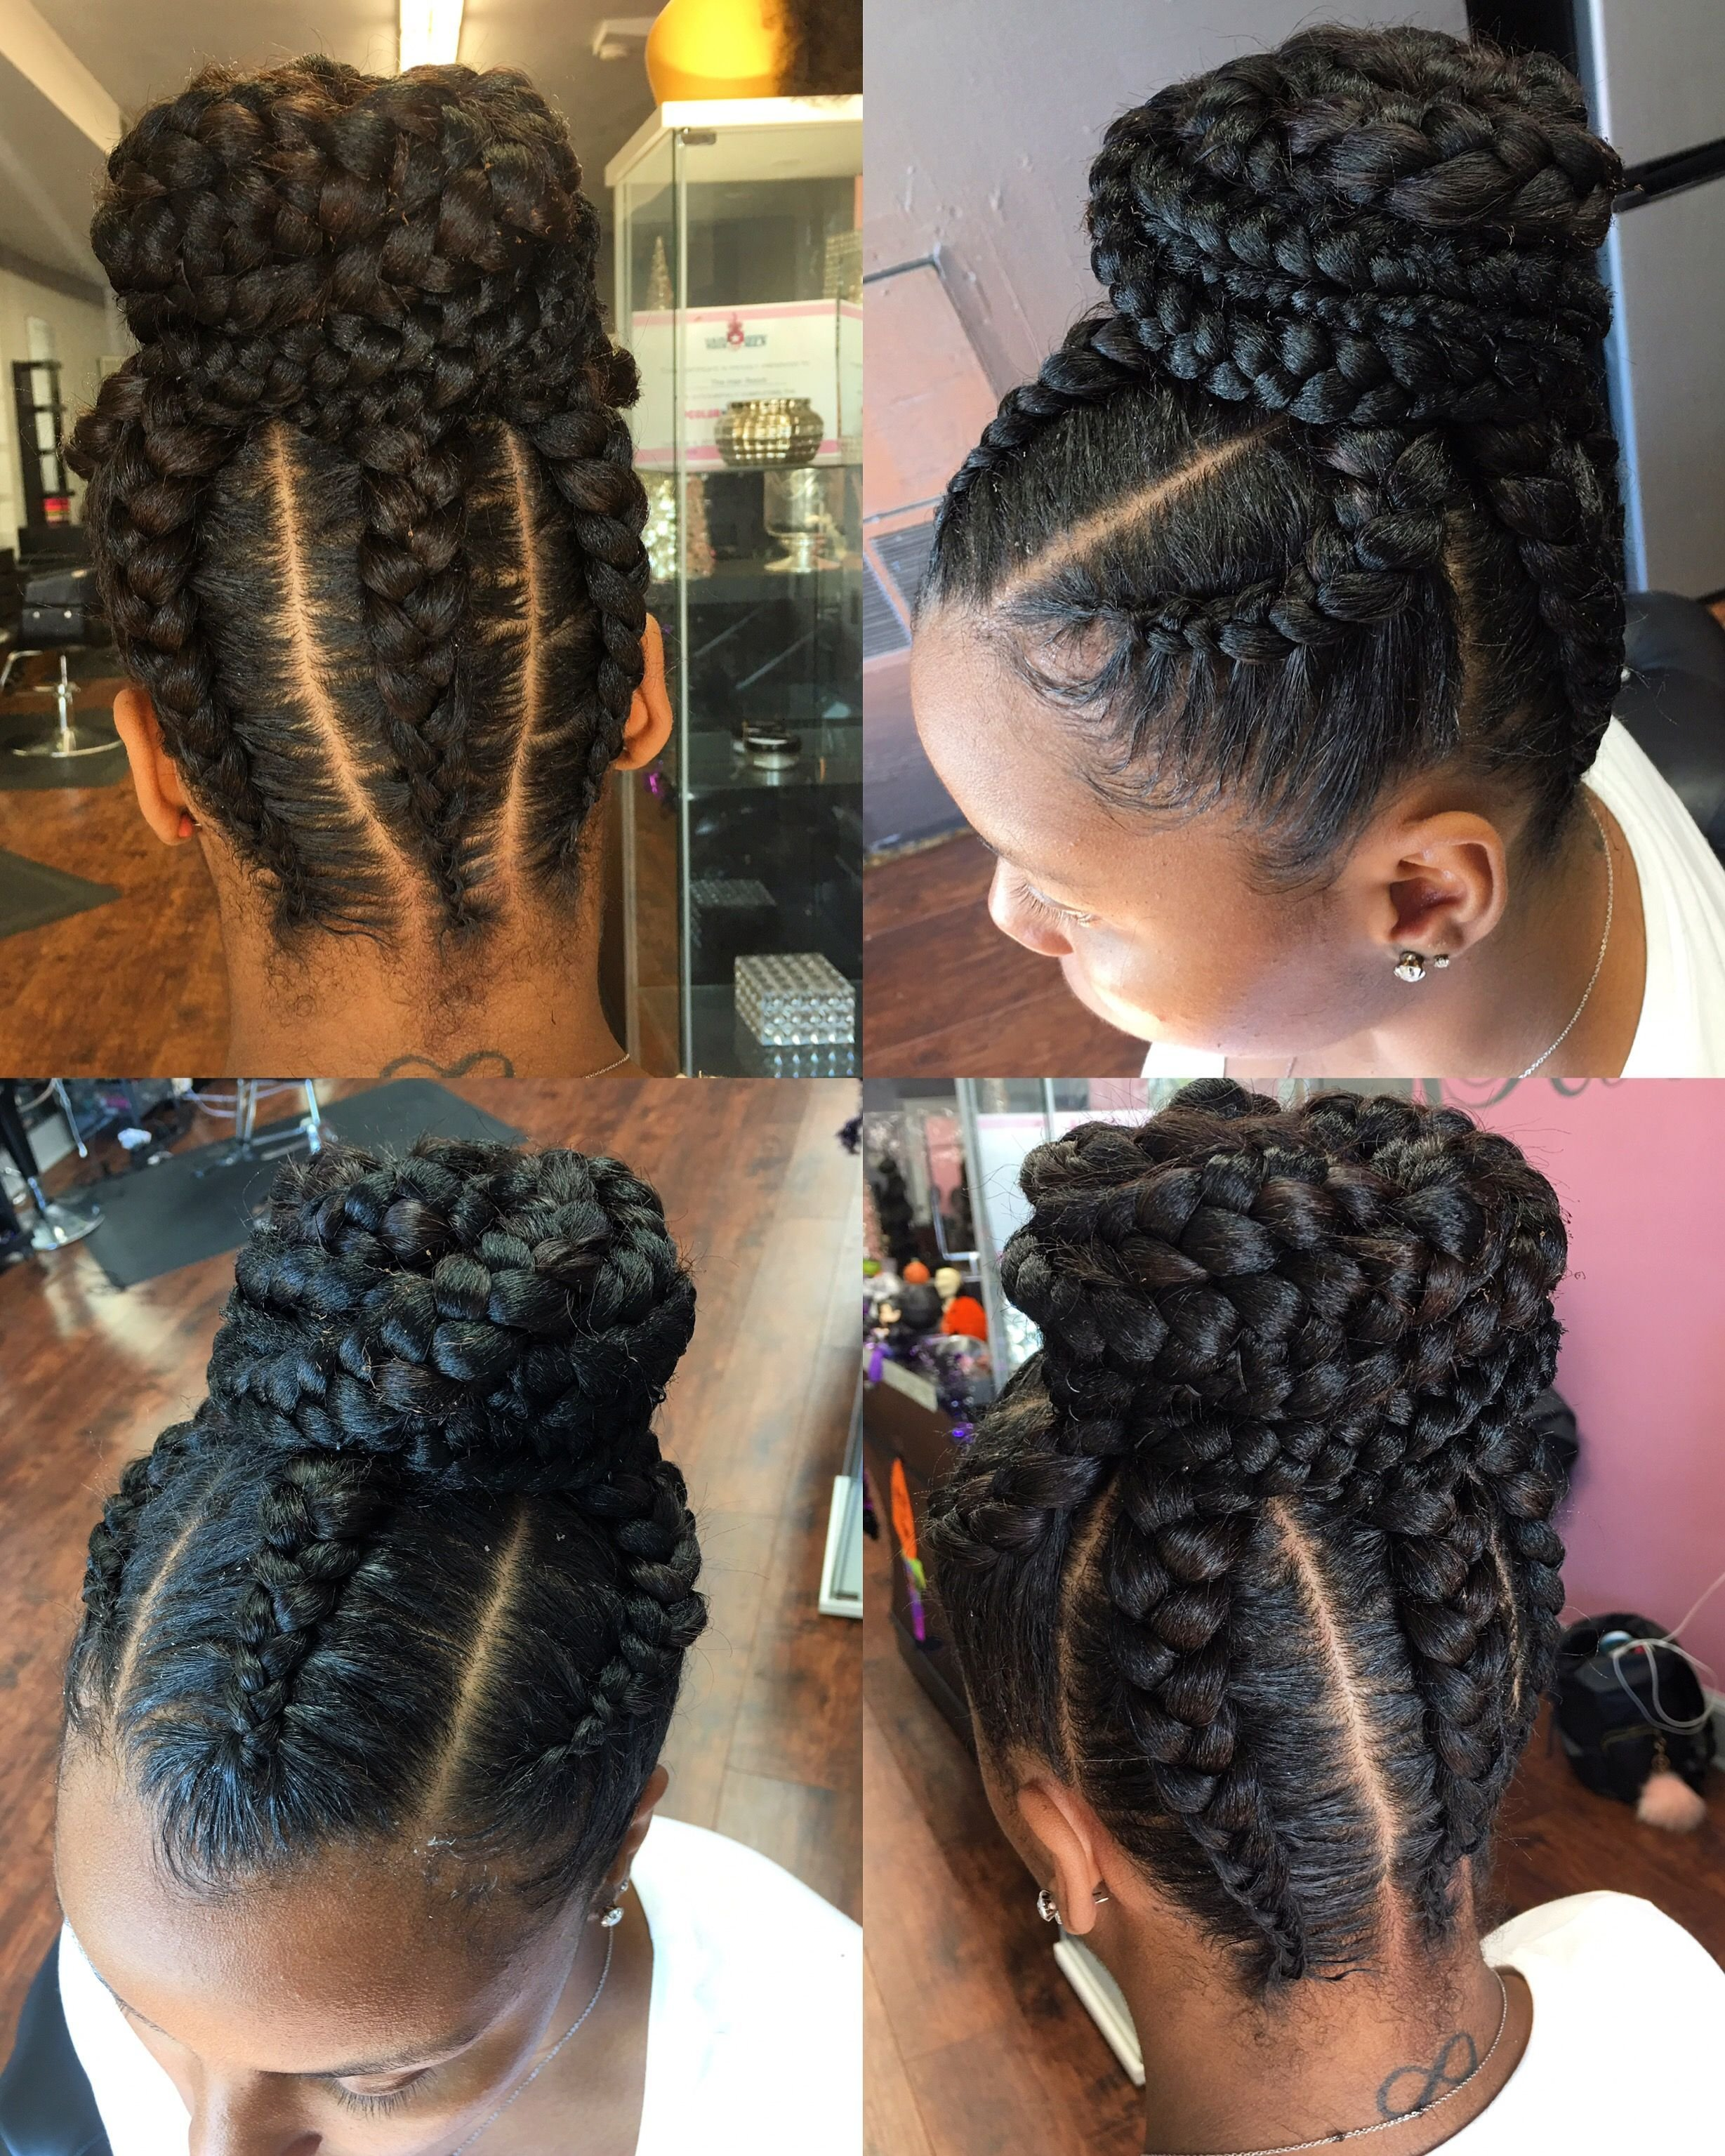 The Best Natural Hair In 2019 Wedding Hairstyles Hair Styles Pictures